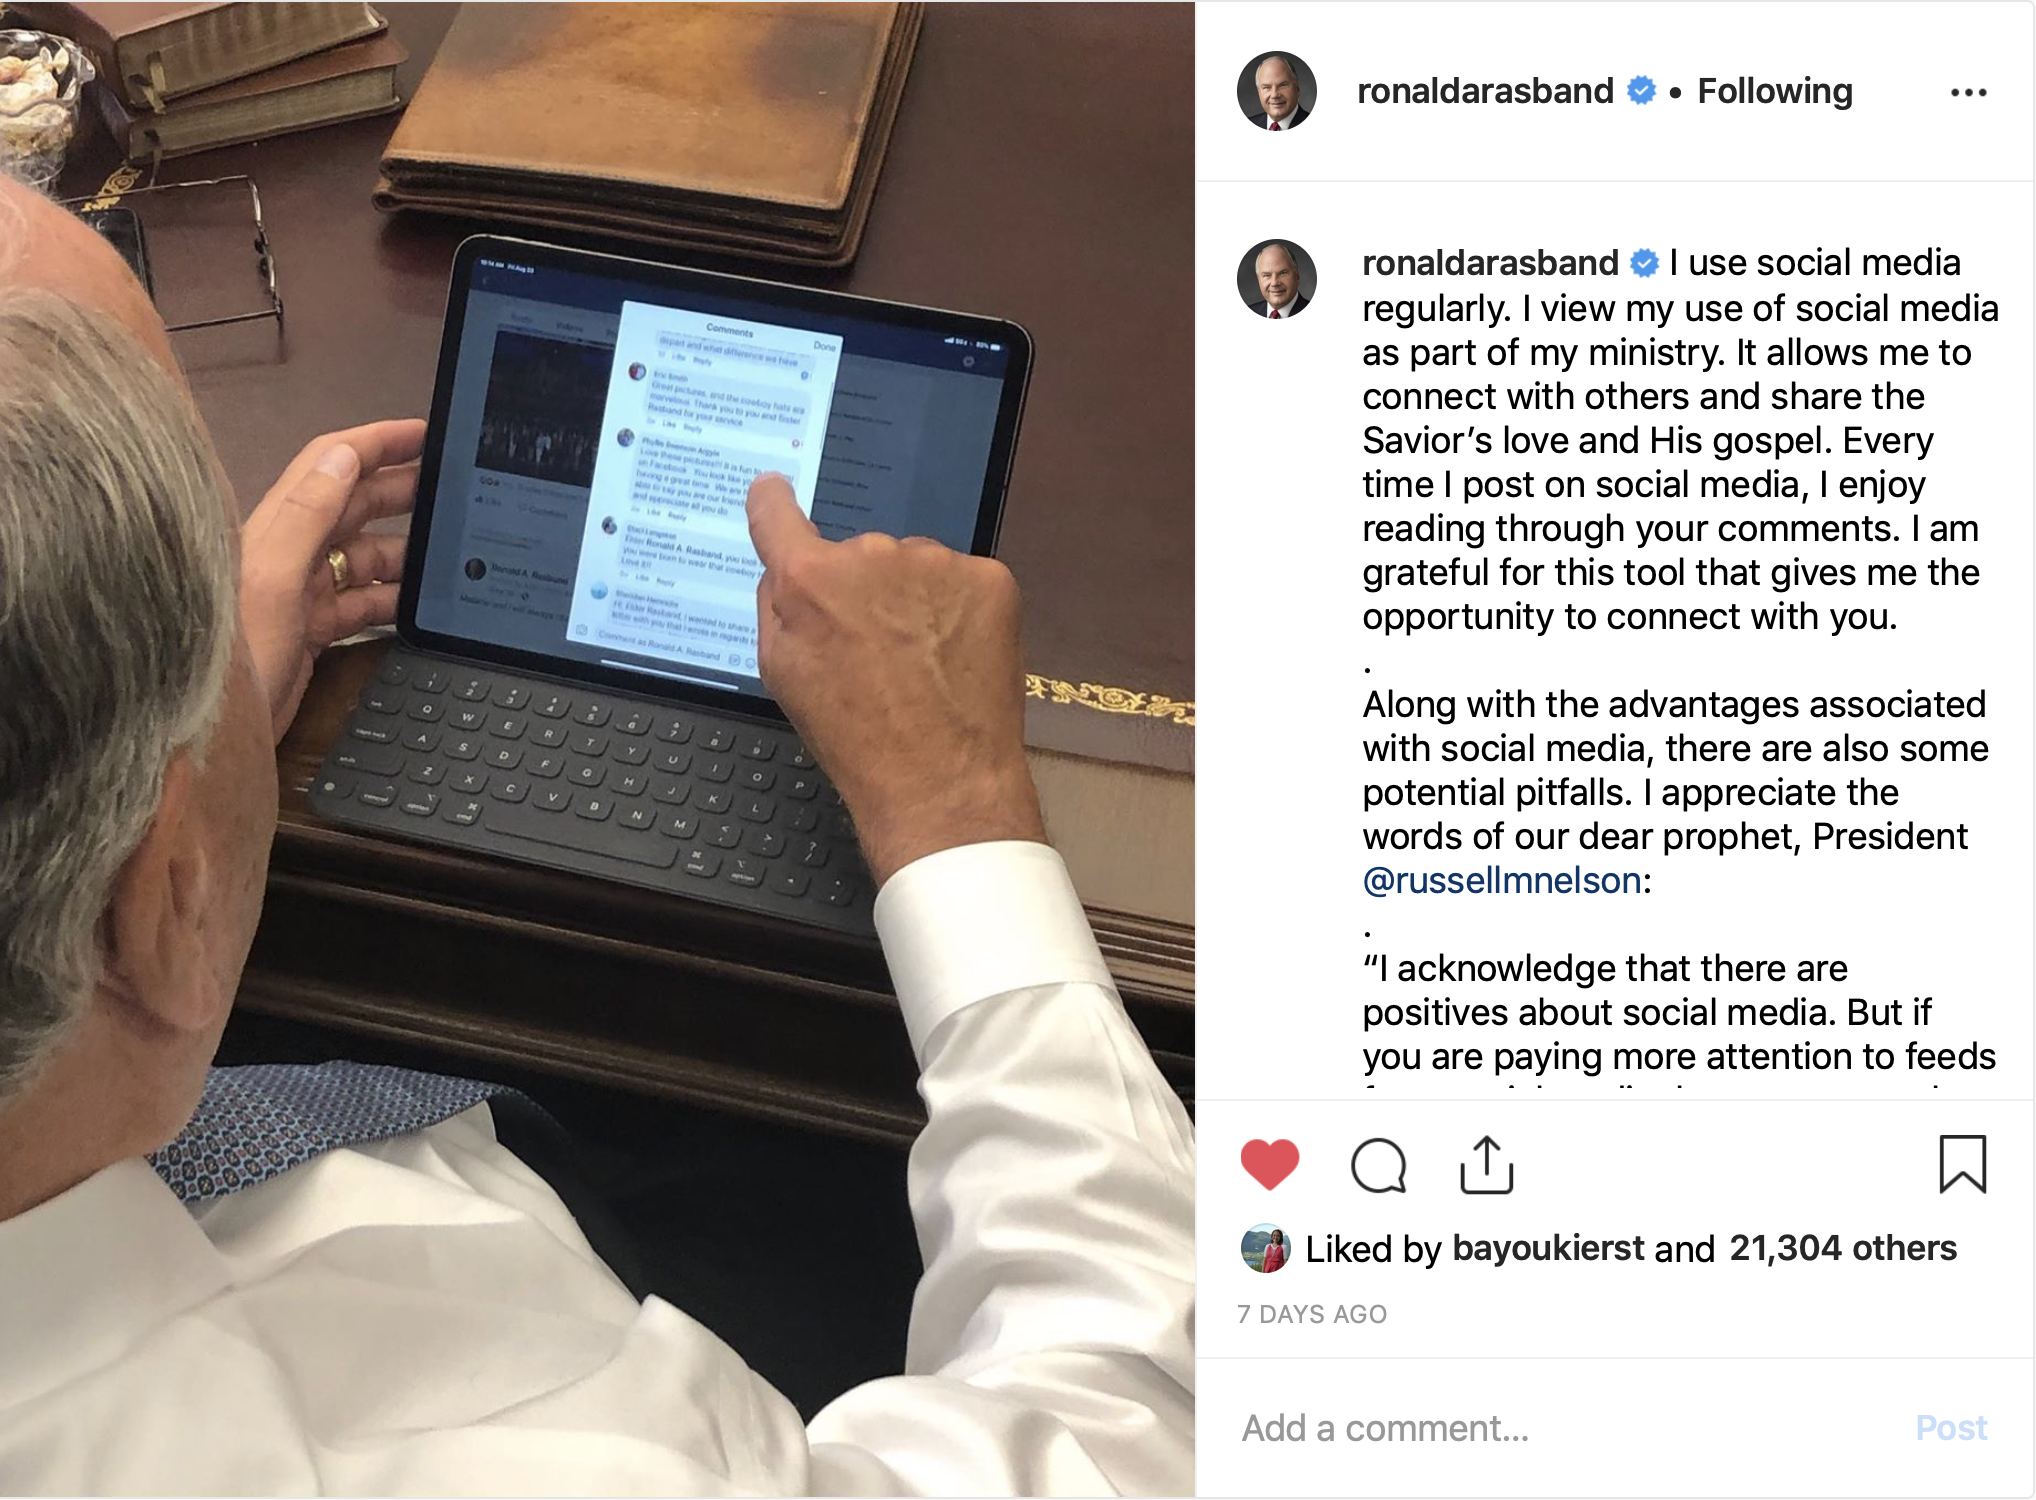 Elder Rasband shares how he uses social media as part of his ministry in an Instagram post.